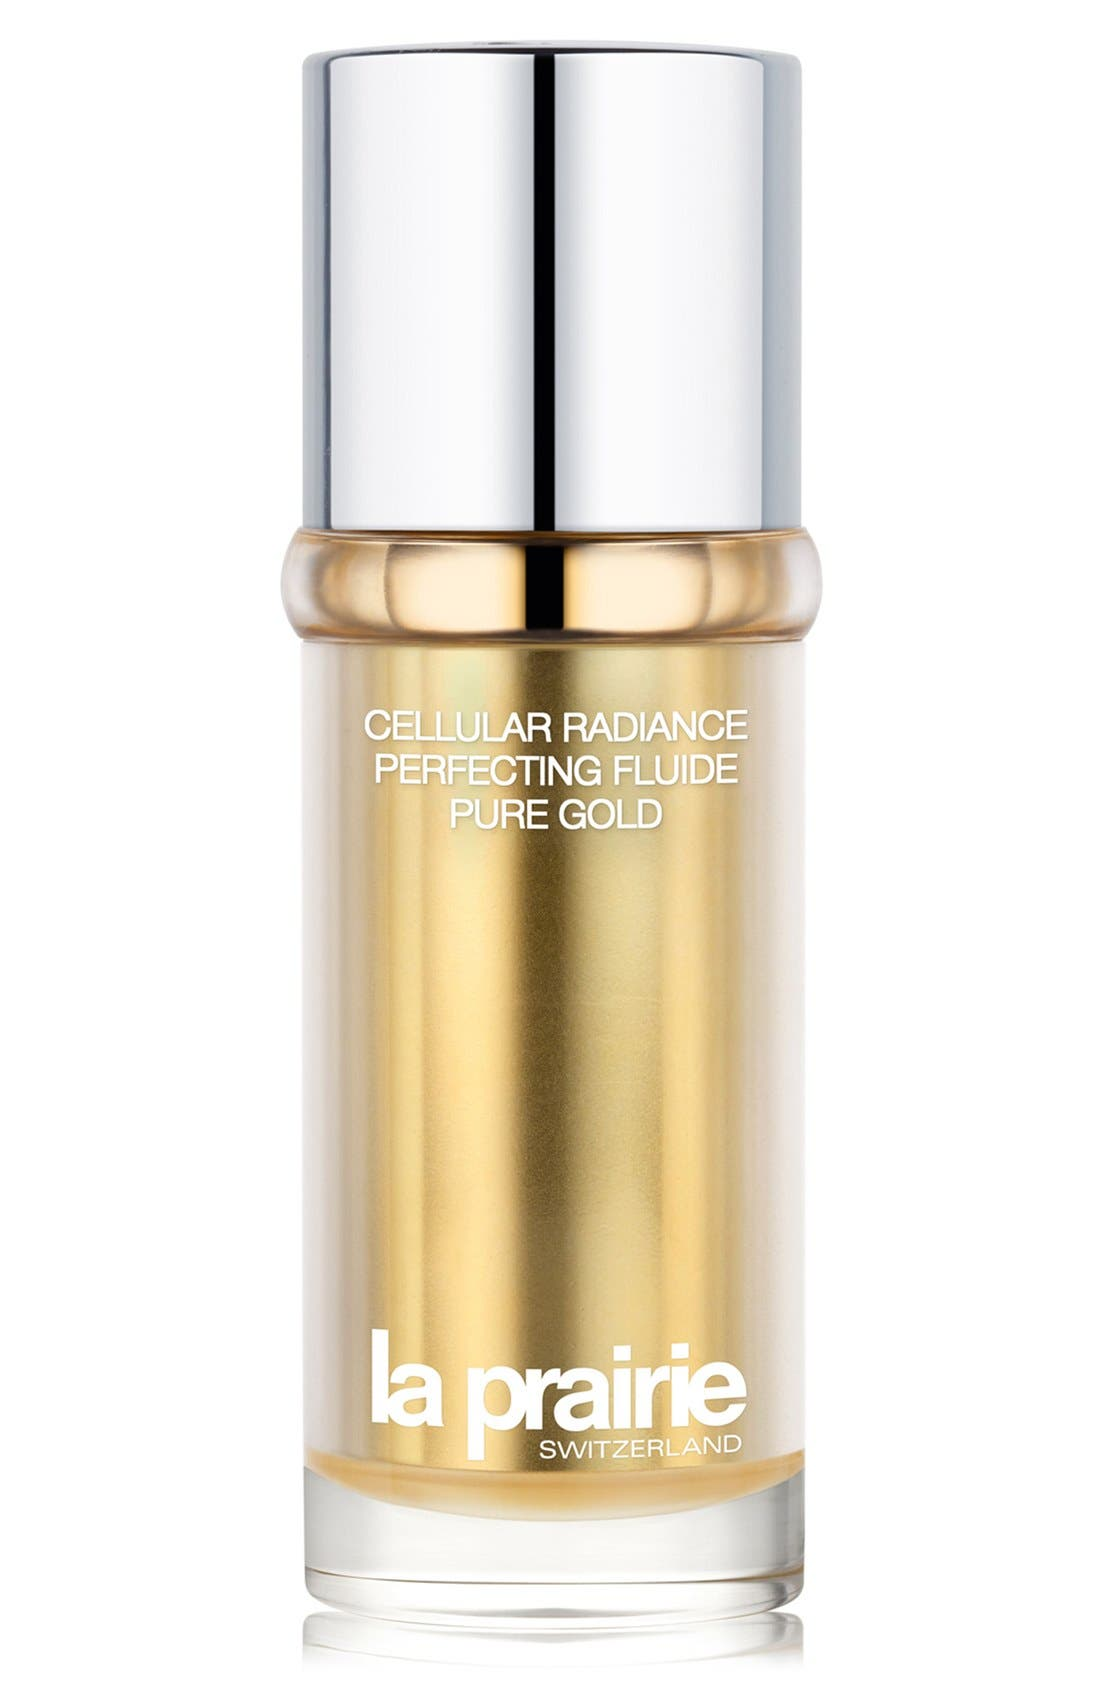 La Prairie 'Cellular Radiance' Perfecting Fluide Pure Gold Moisturizer